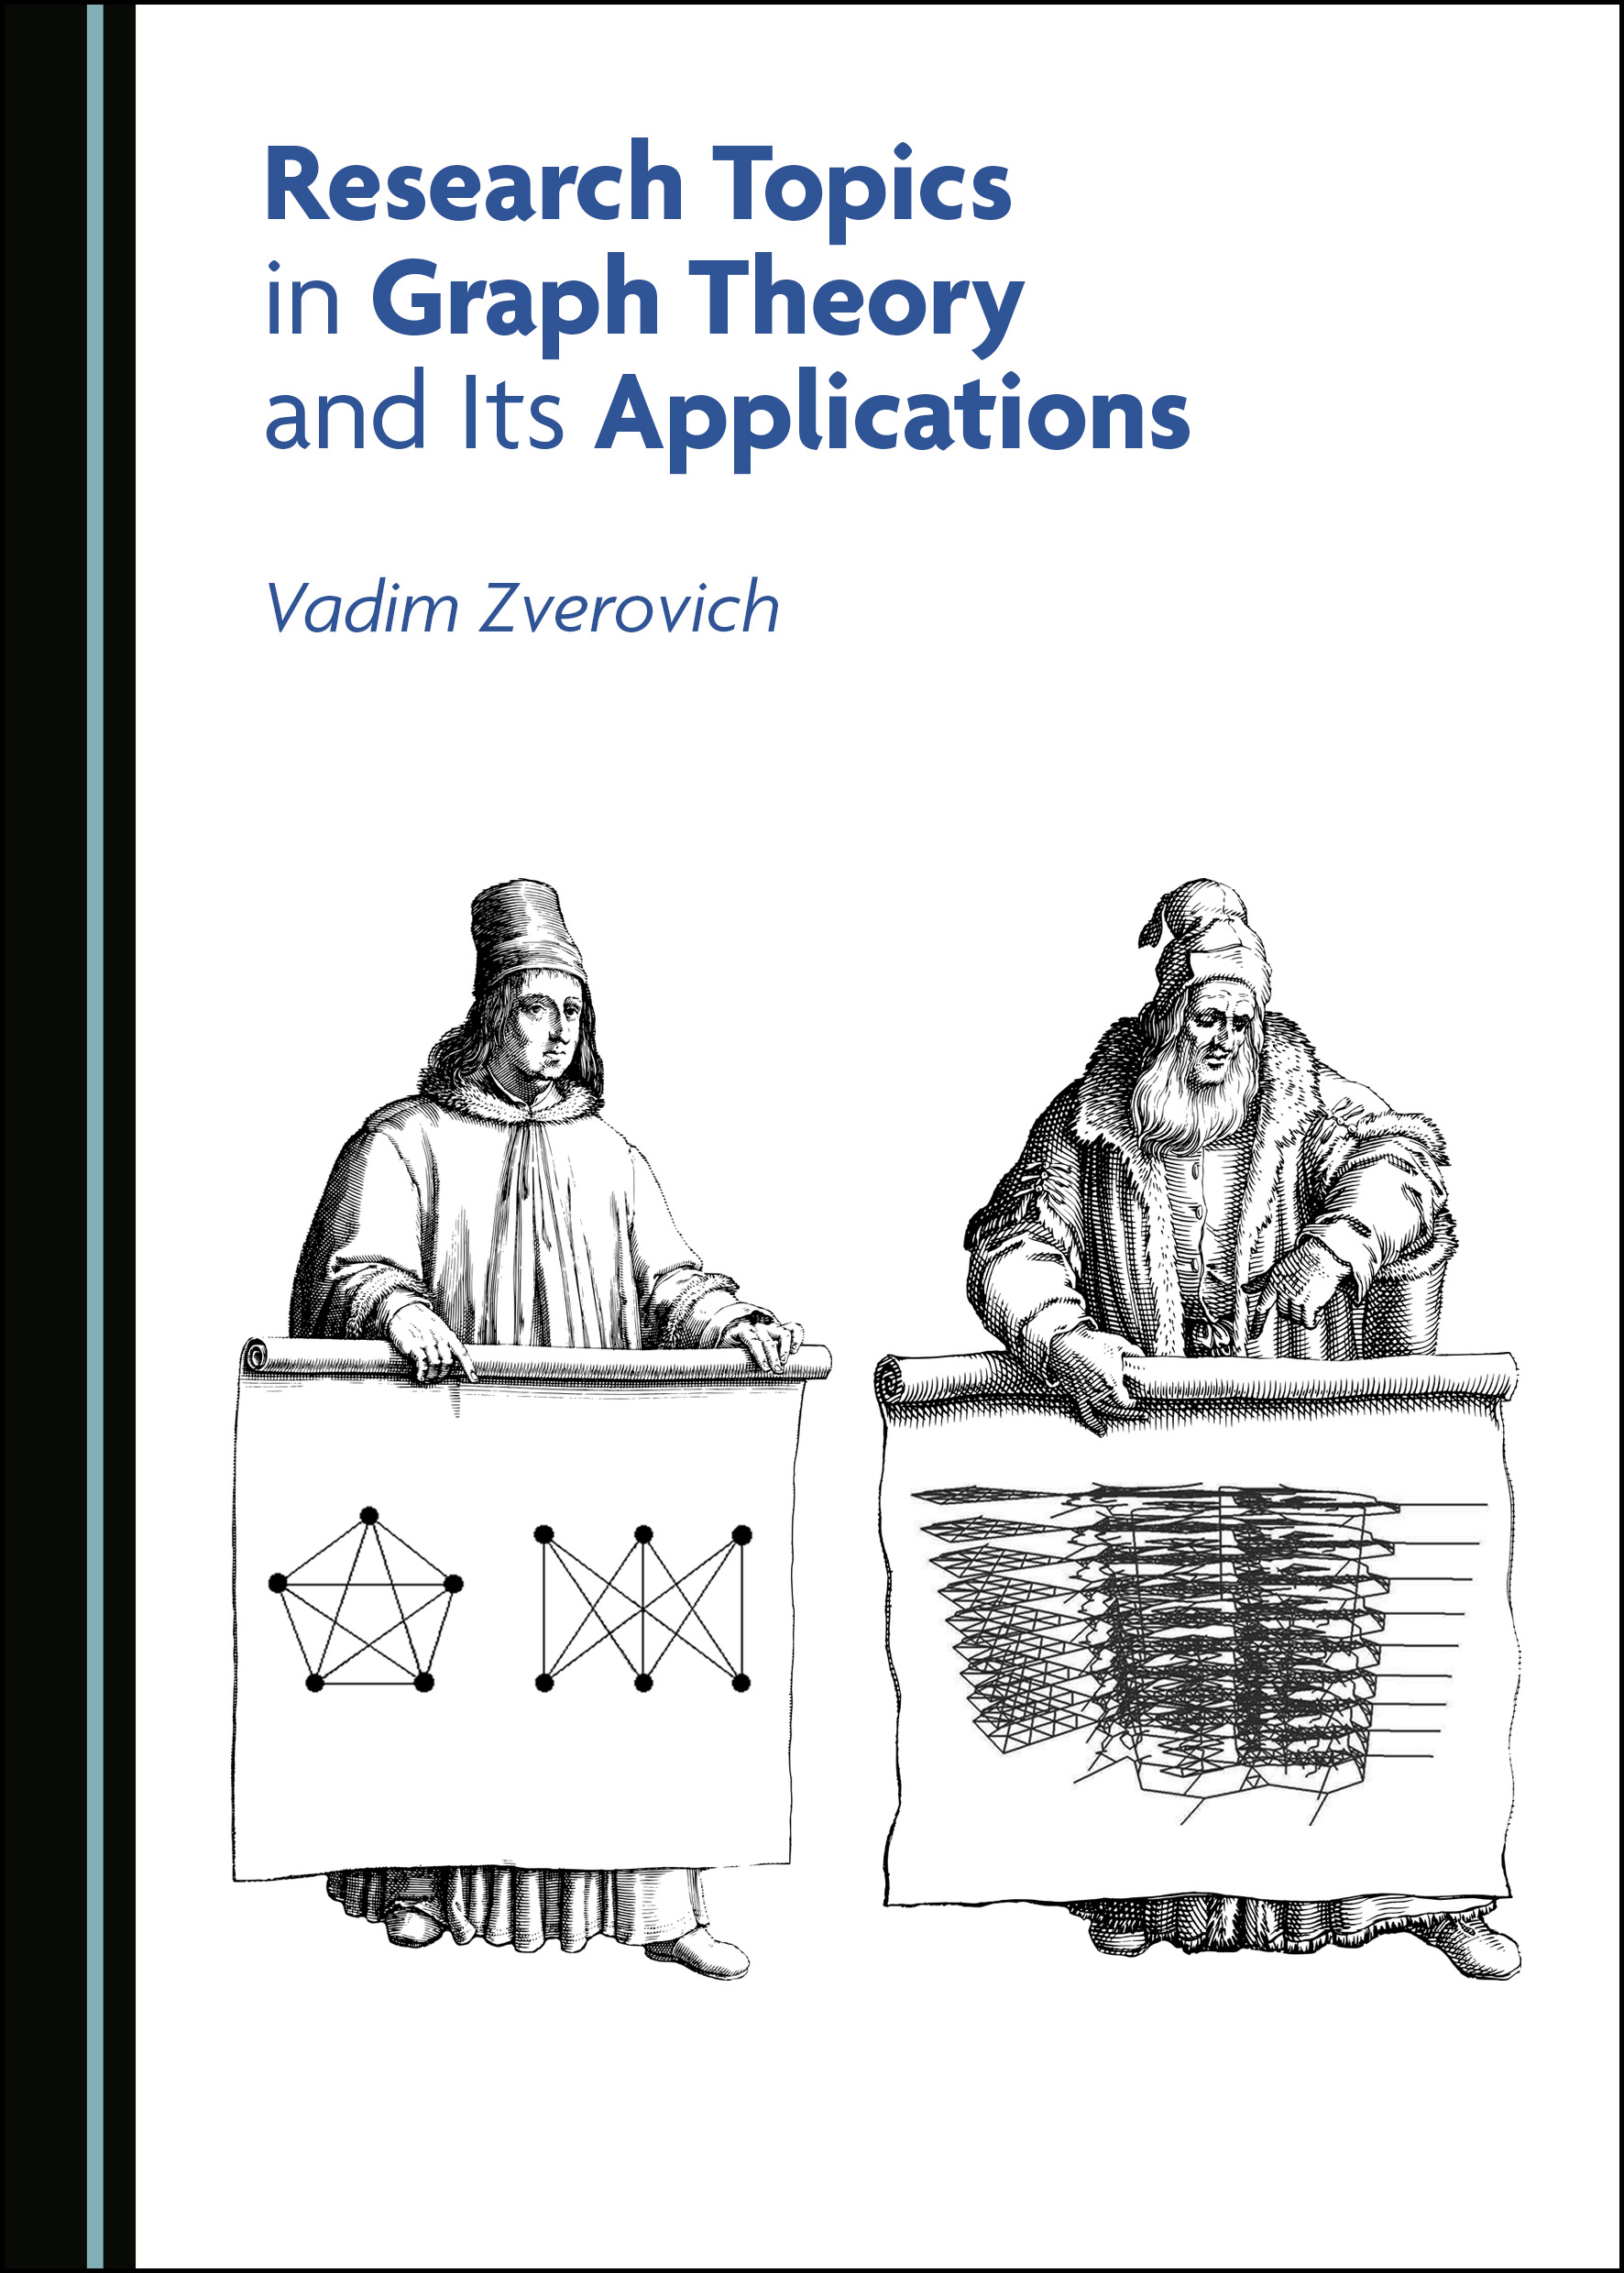 Research Topics in Graph Theory and Its Applications